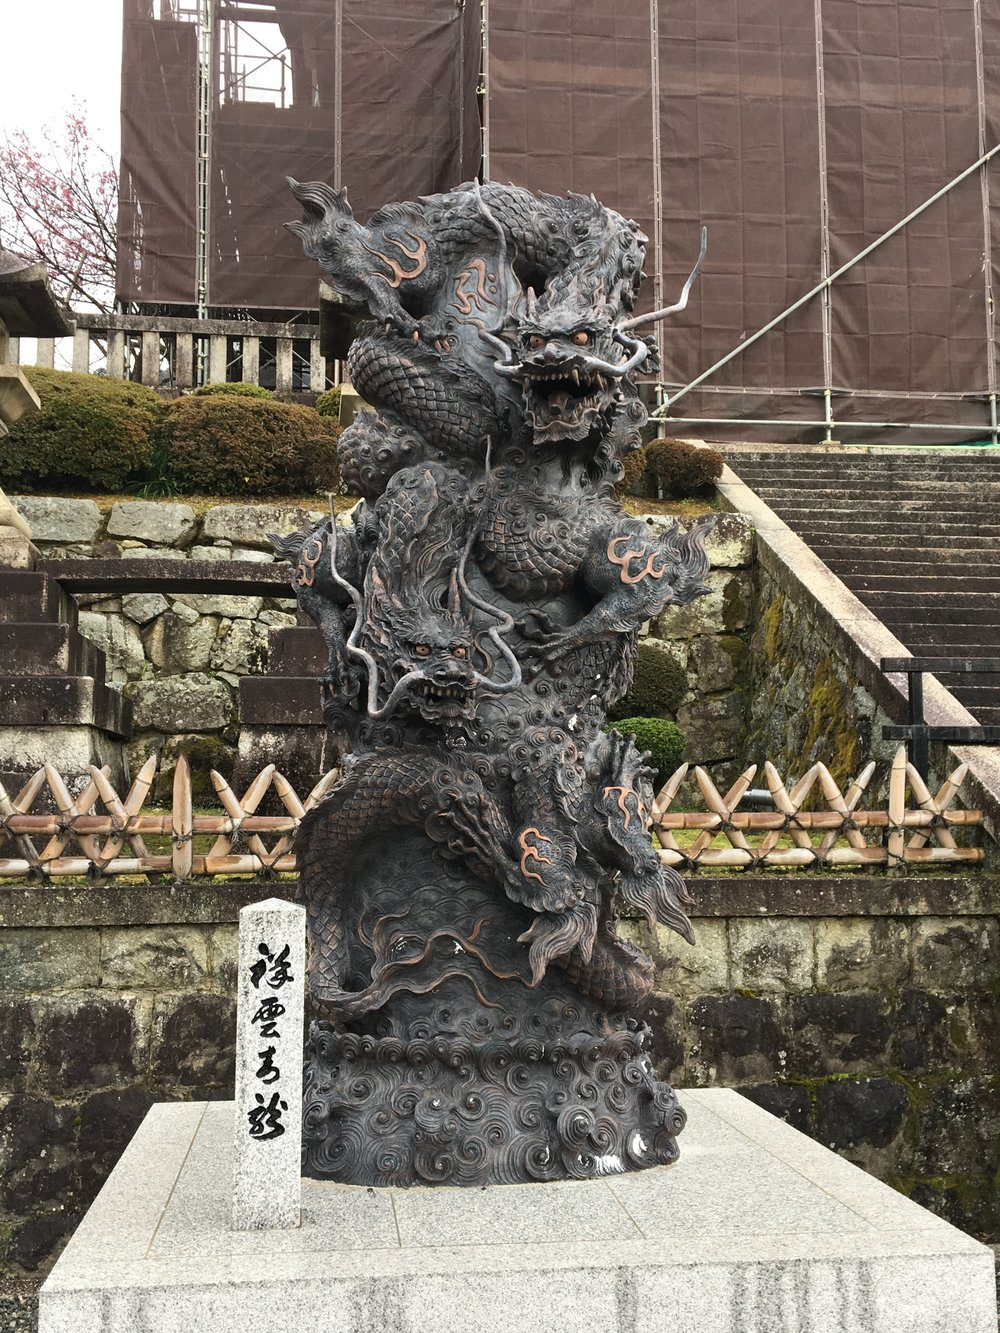 Dragon Statue - Kyoto Japan